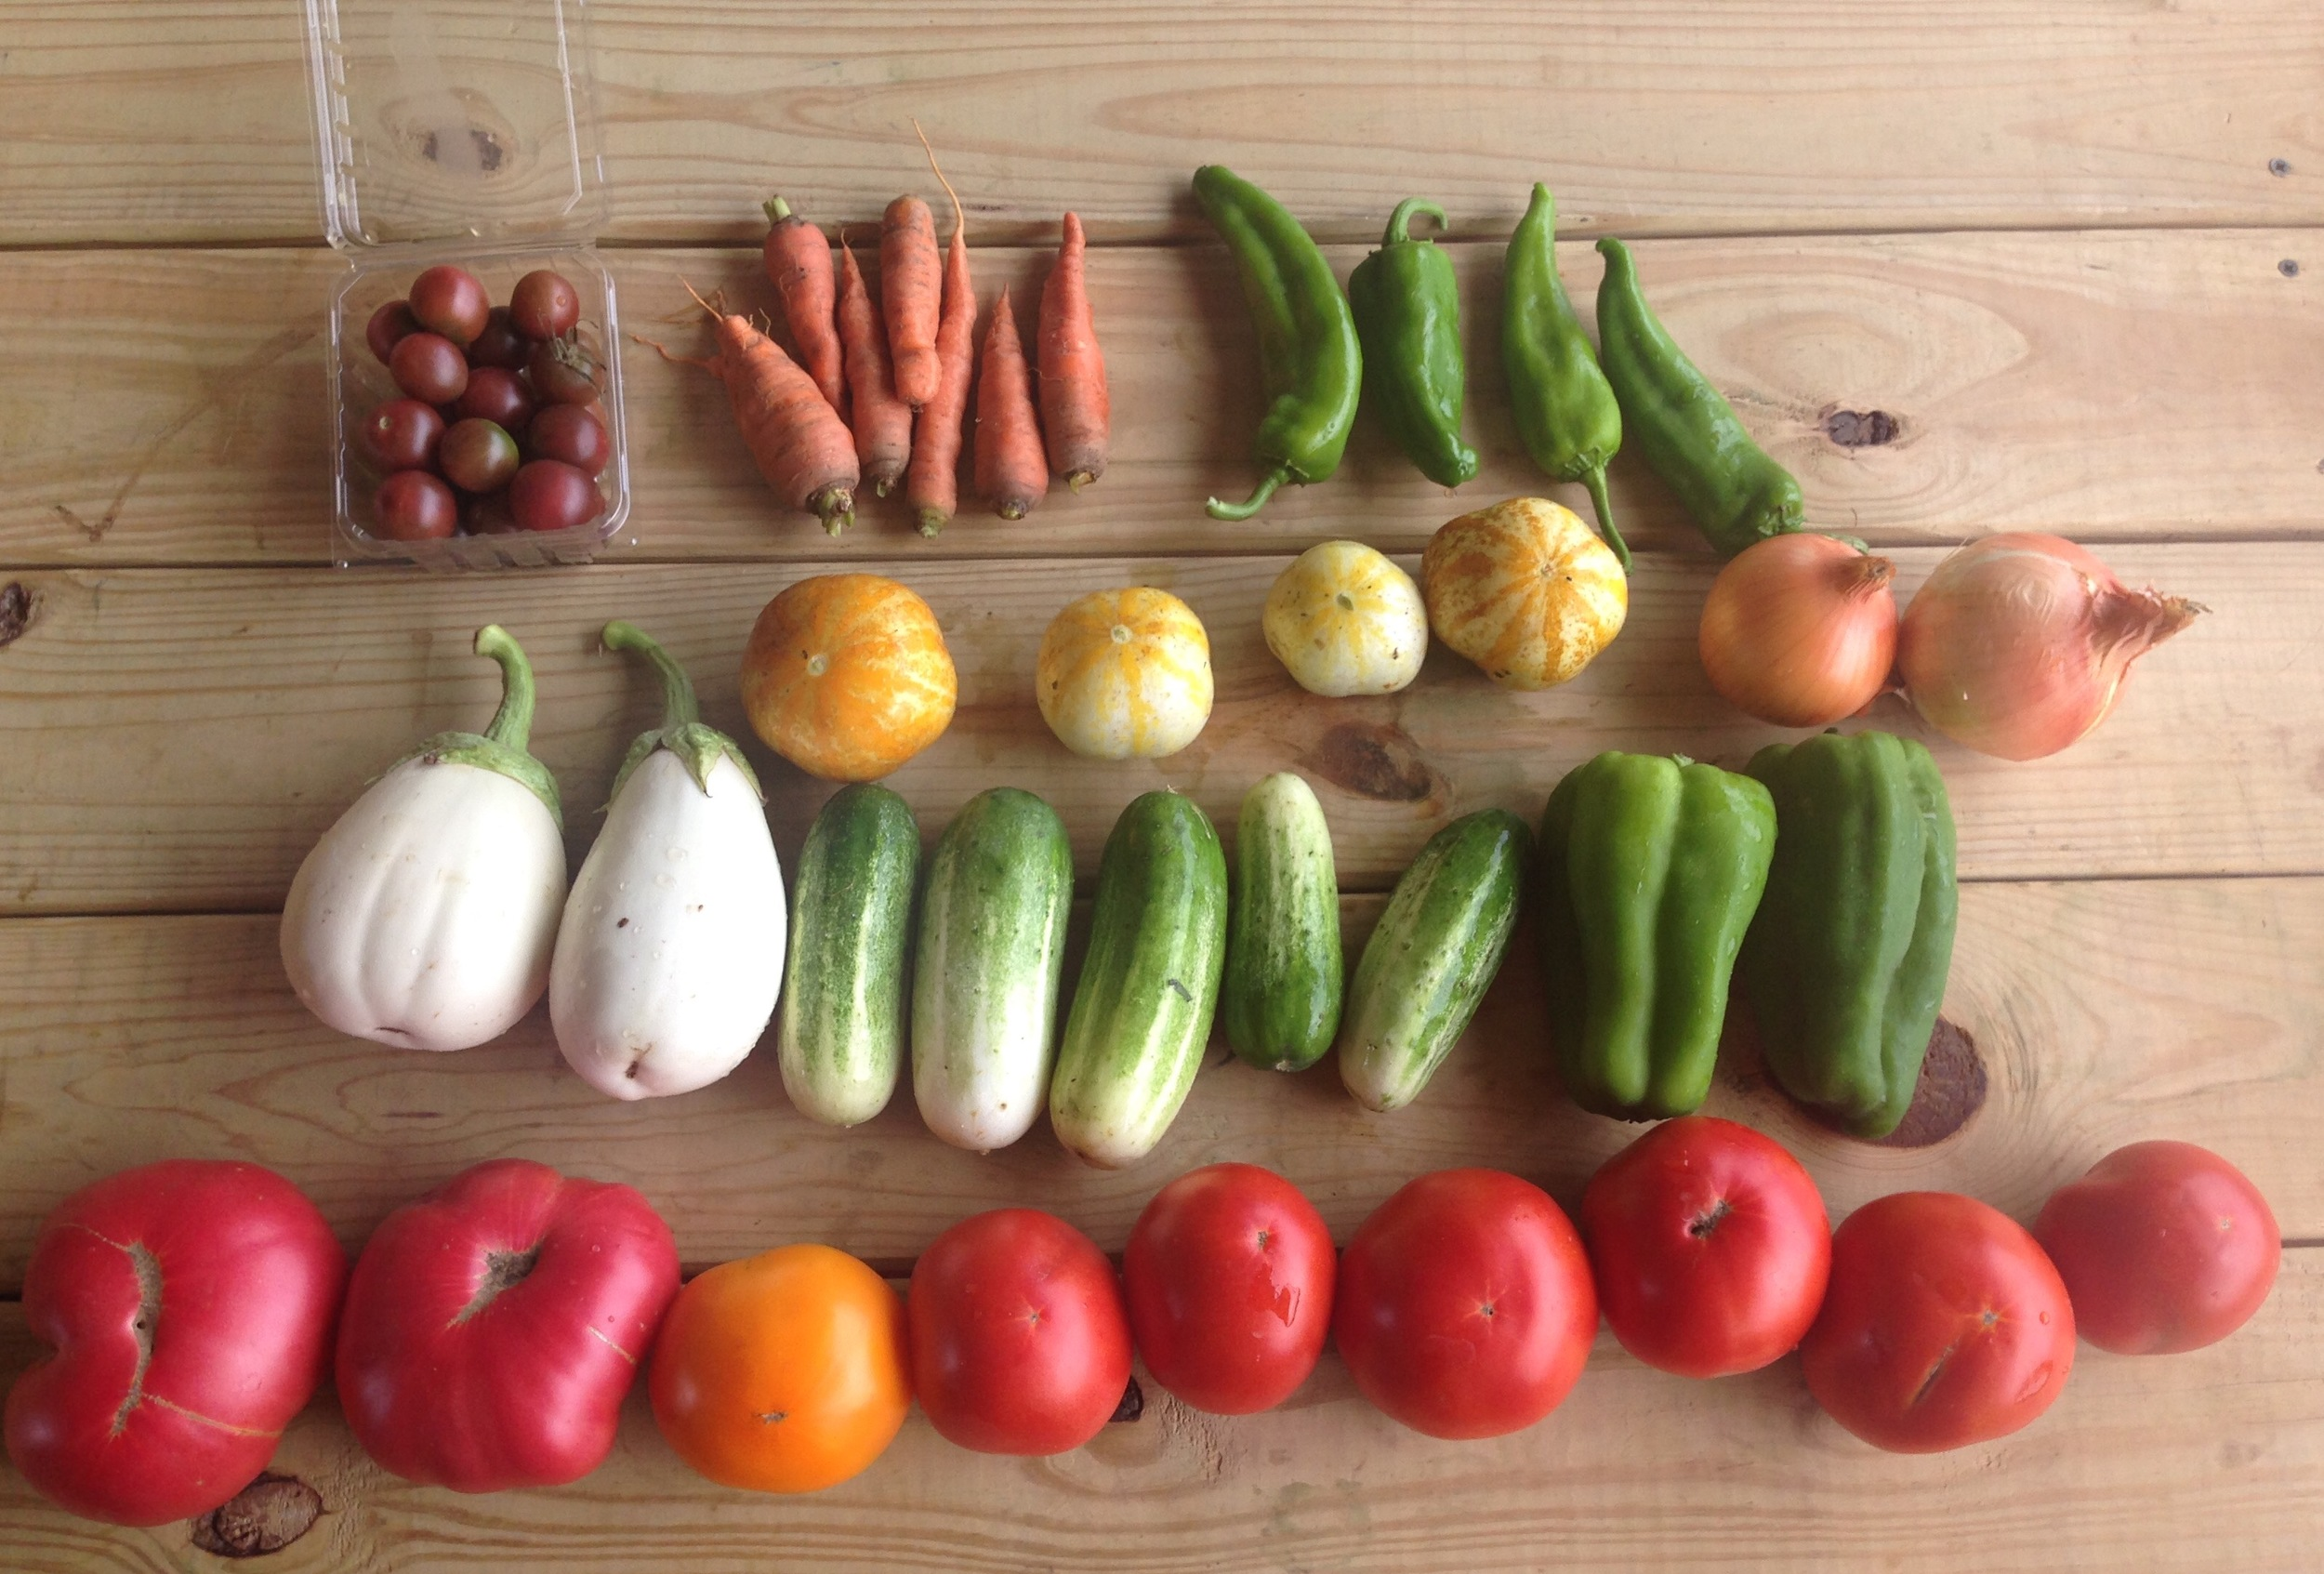 top left to right: cherry tomatoes, carrots, anaheim peppers  middle left to right: eggplant, lemon and pickling cucumbers, onion, bell peppers  bottom left to right: heirloom tomatoes, beefsteaks